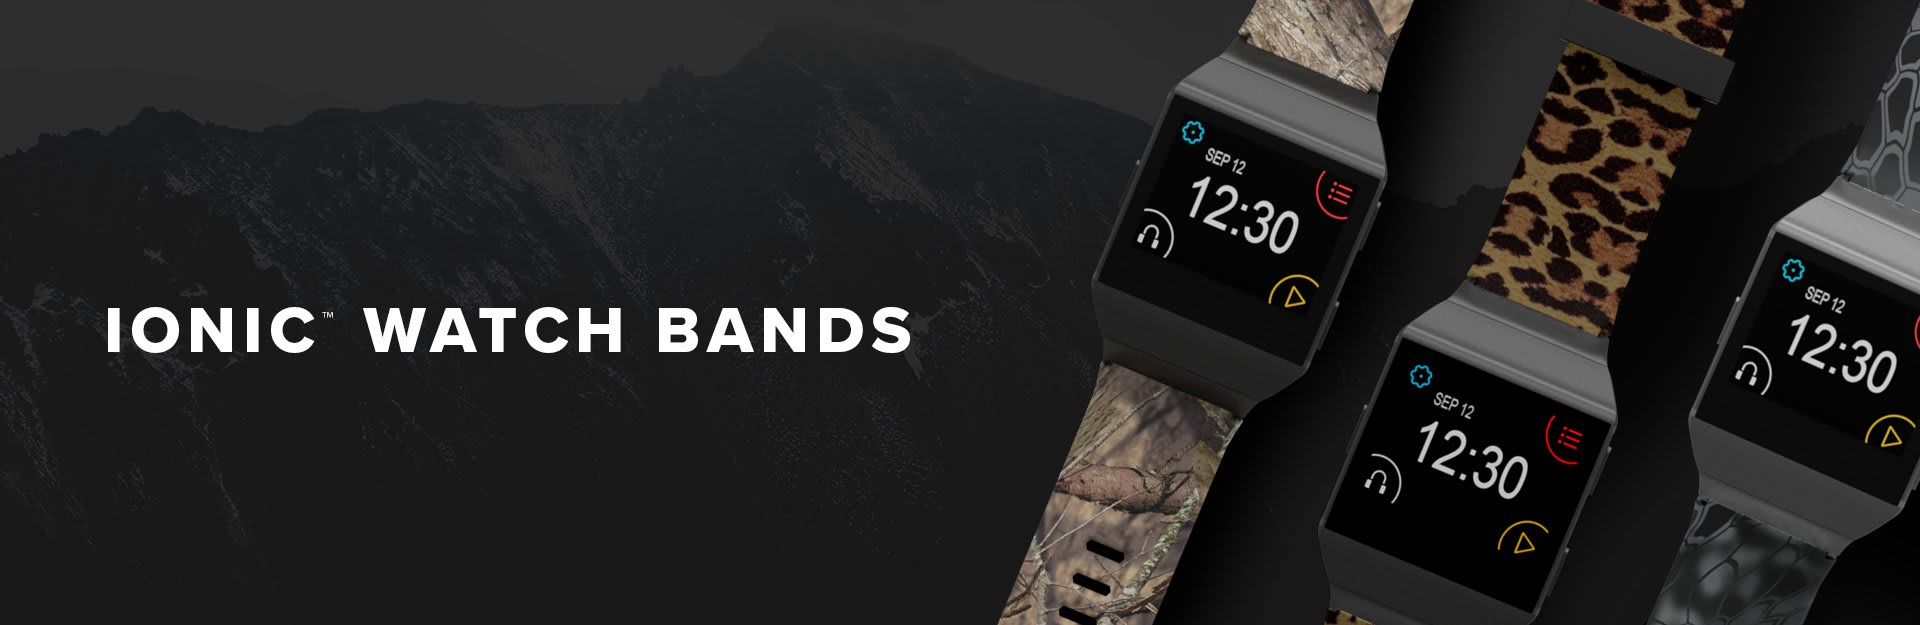 Ionic Watch Bands, Kryptek Typhon, Leopard, Winter Rose watch bands overlaid on mountainscape